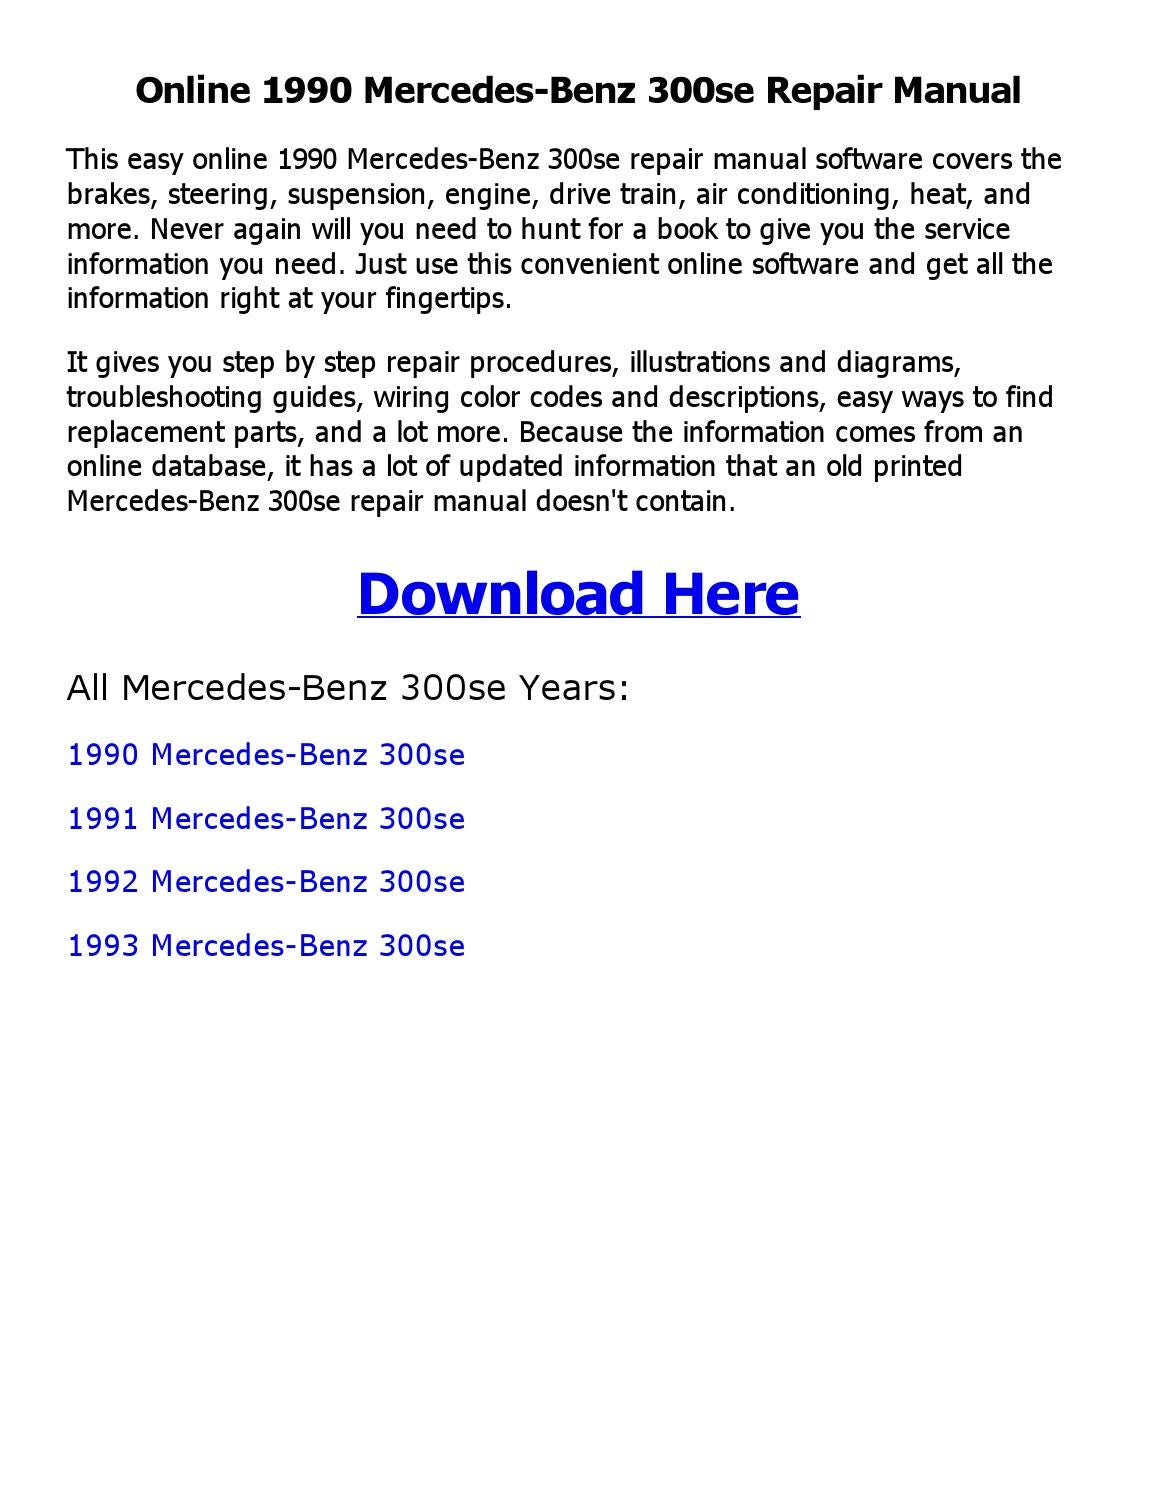 1992 mercedes 300se fuse diagram wiring library 1990 mercedes benz 300se repair manual online by shoaibsiddique issuu